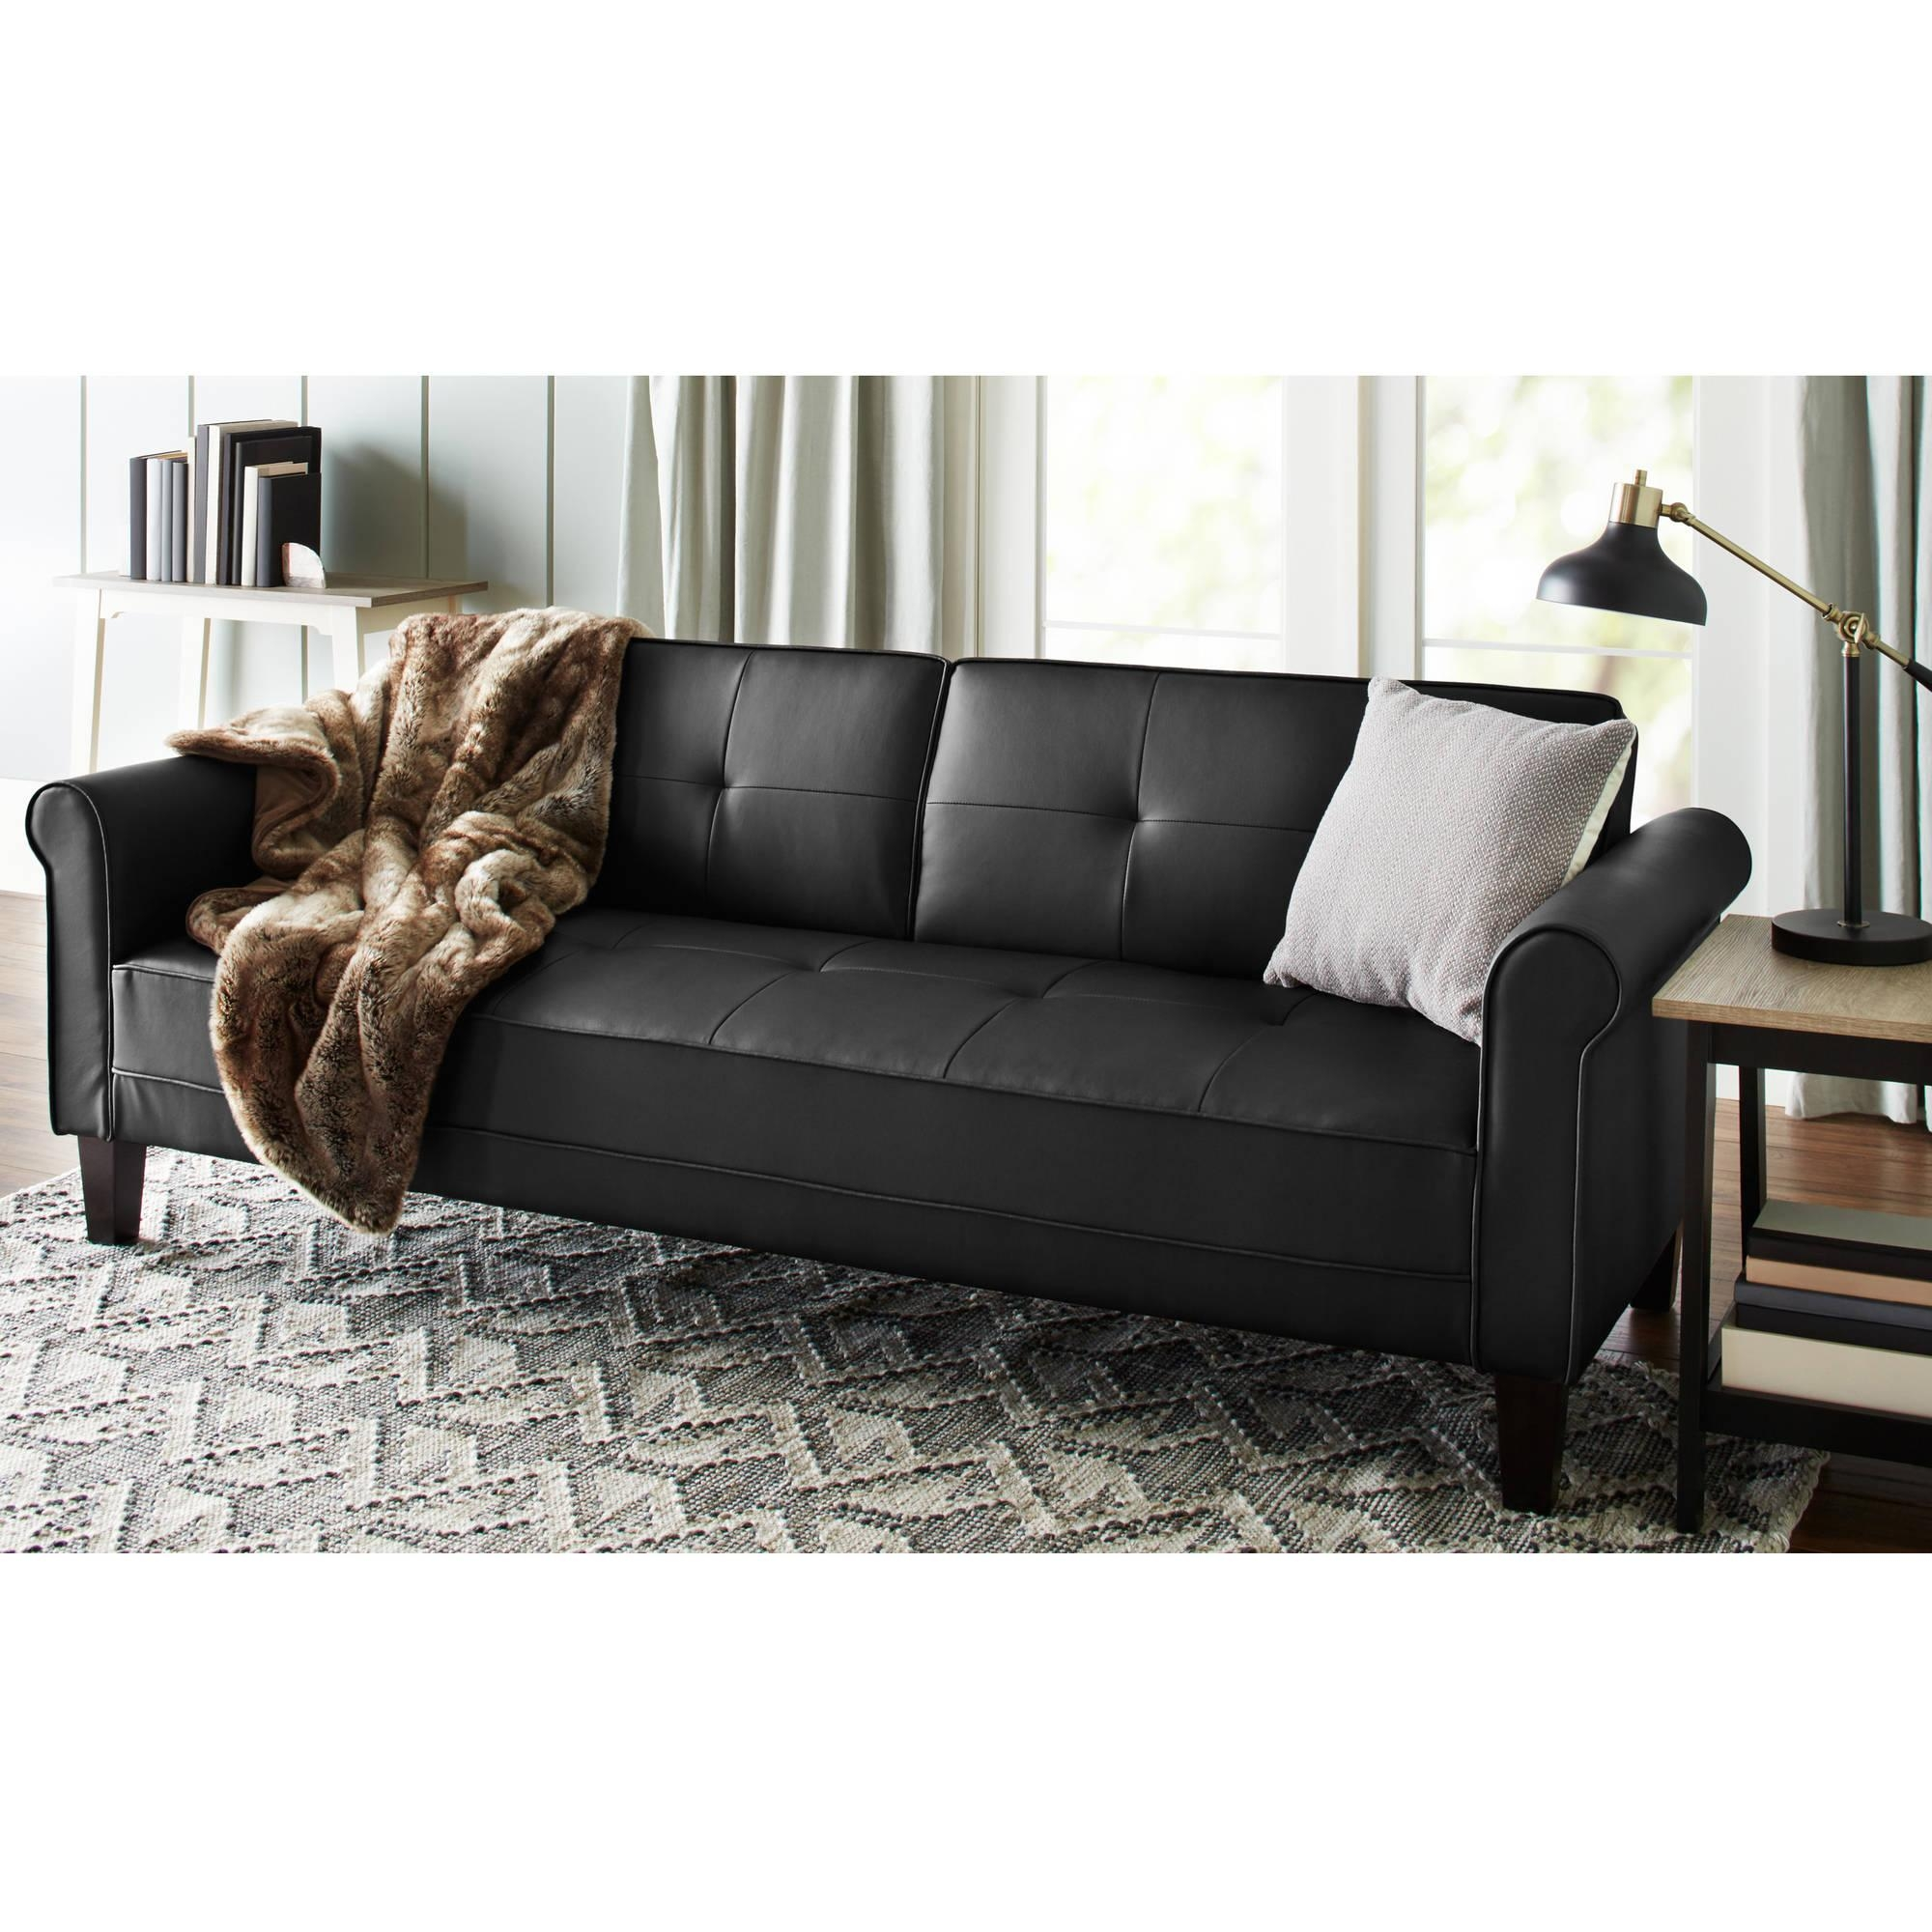 Furniture: Walmart Sofa Bed | Inflatable Furniture Walmart | Blow With Sofa Bed Chairs (Image 9 of 20)